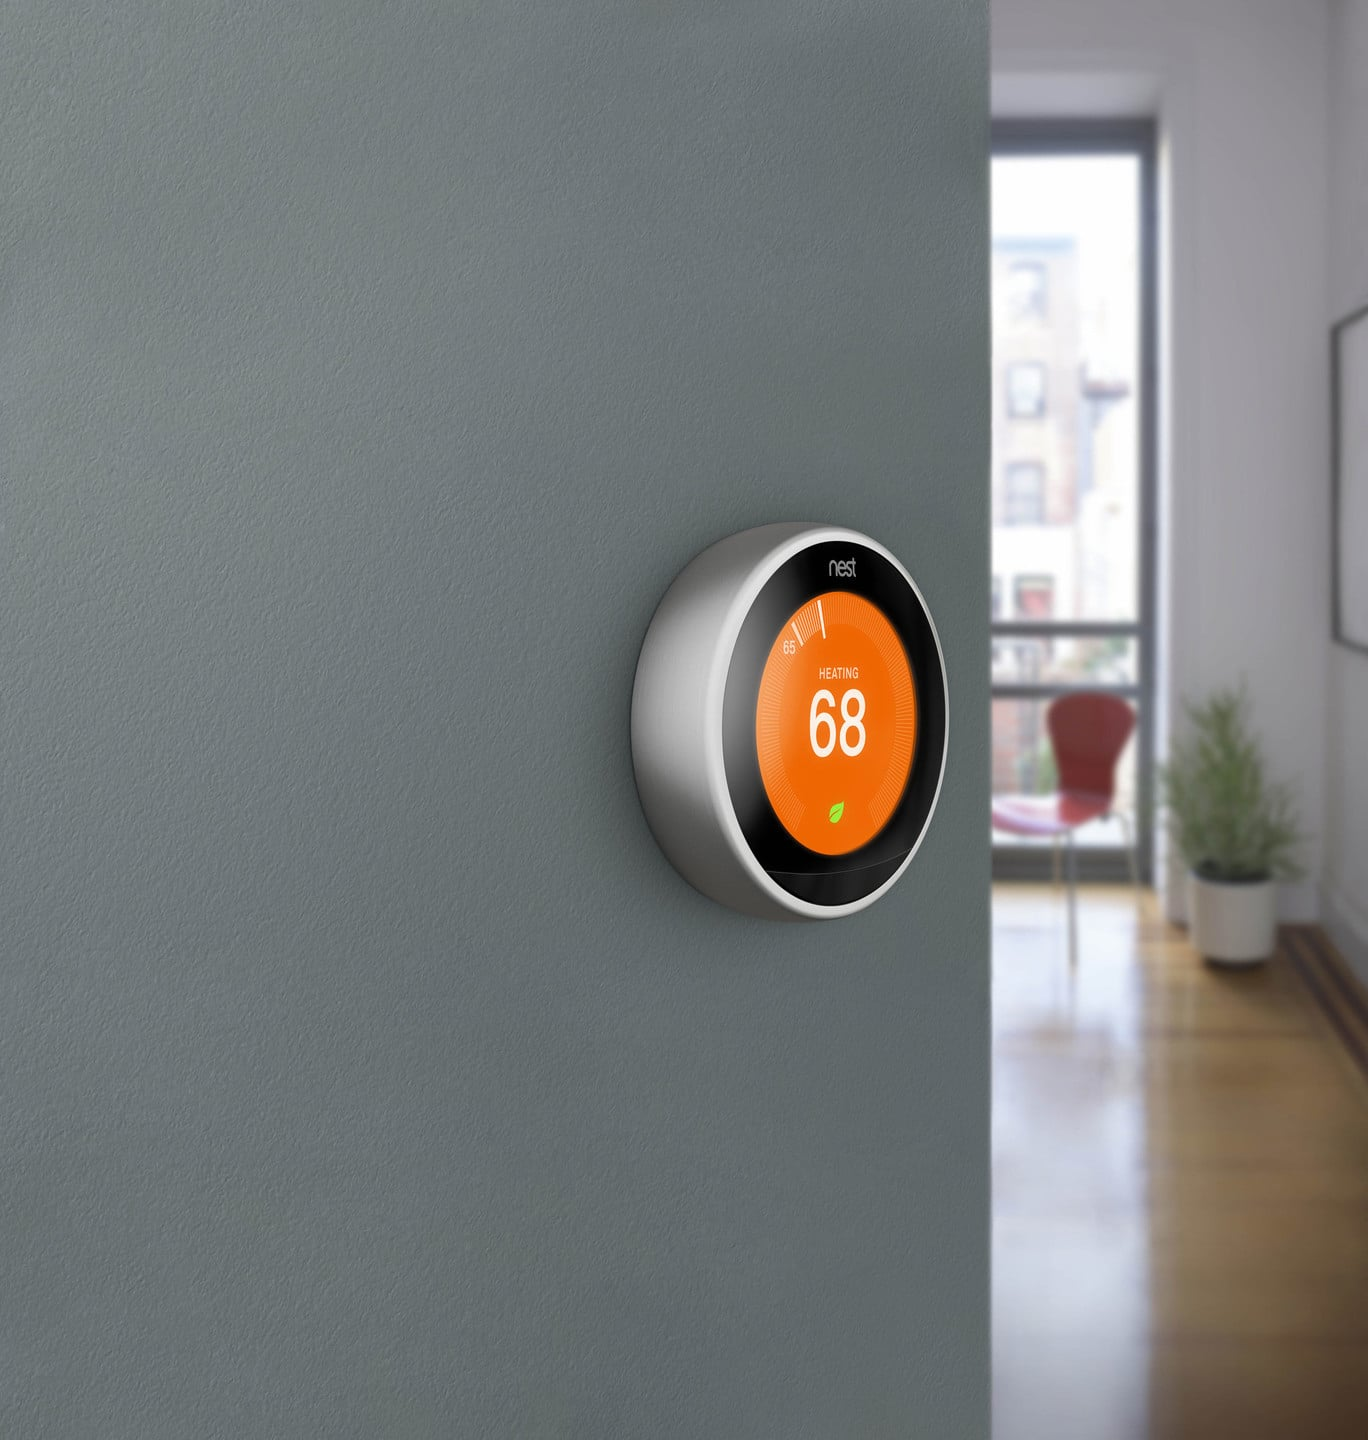 Alphabet's Nest building cheaper thermostat, home security system